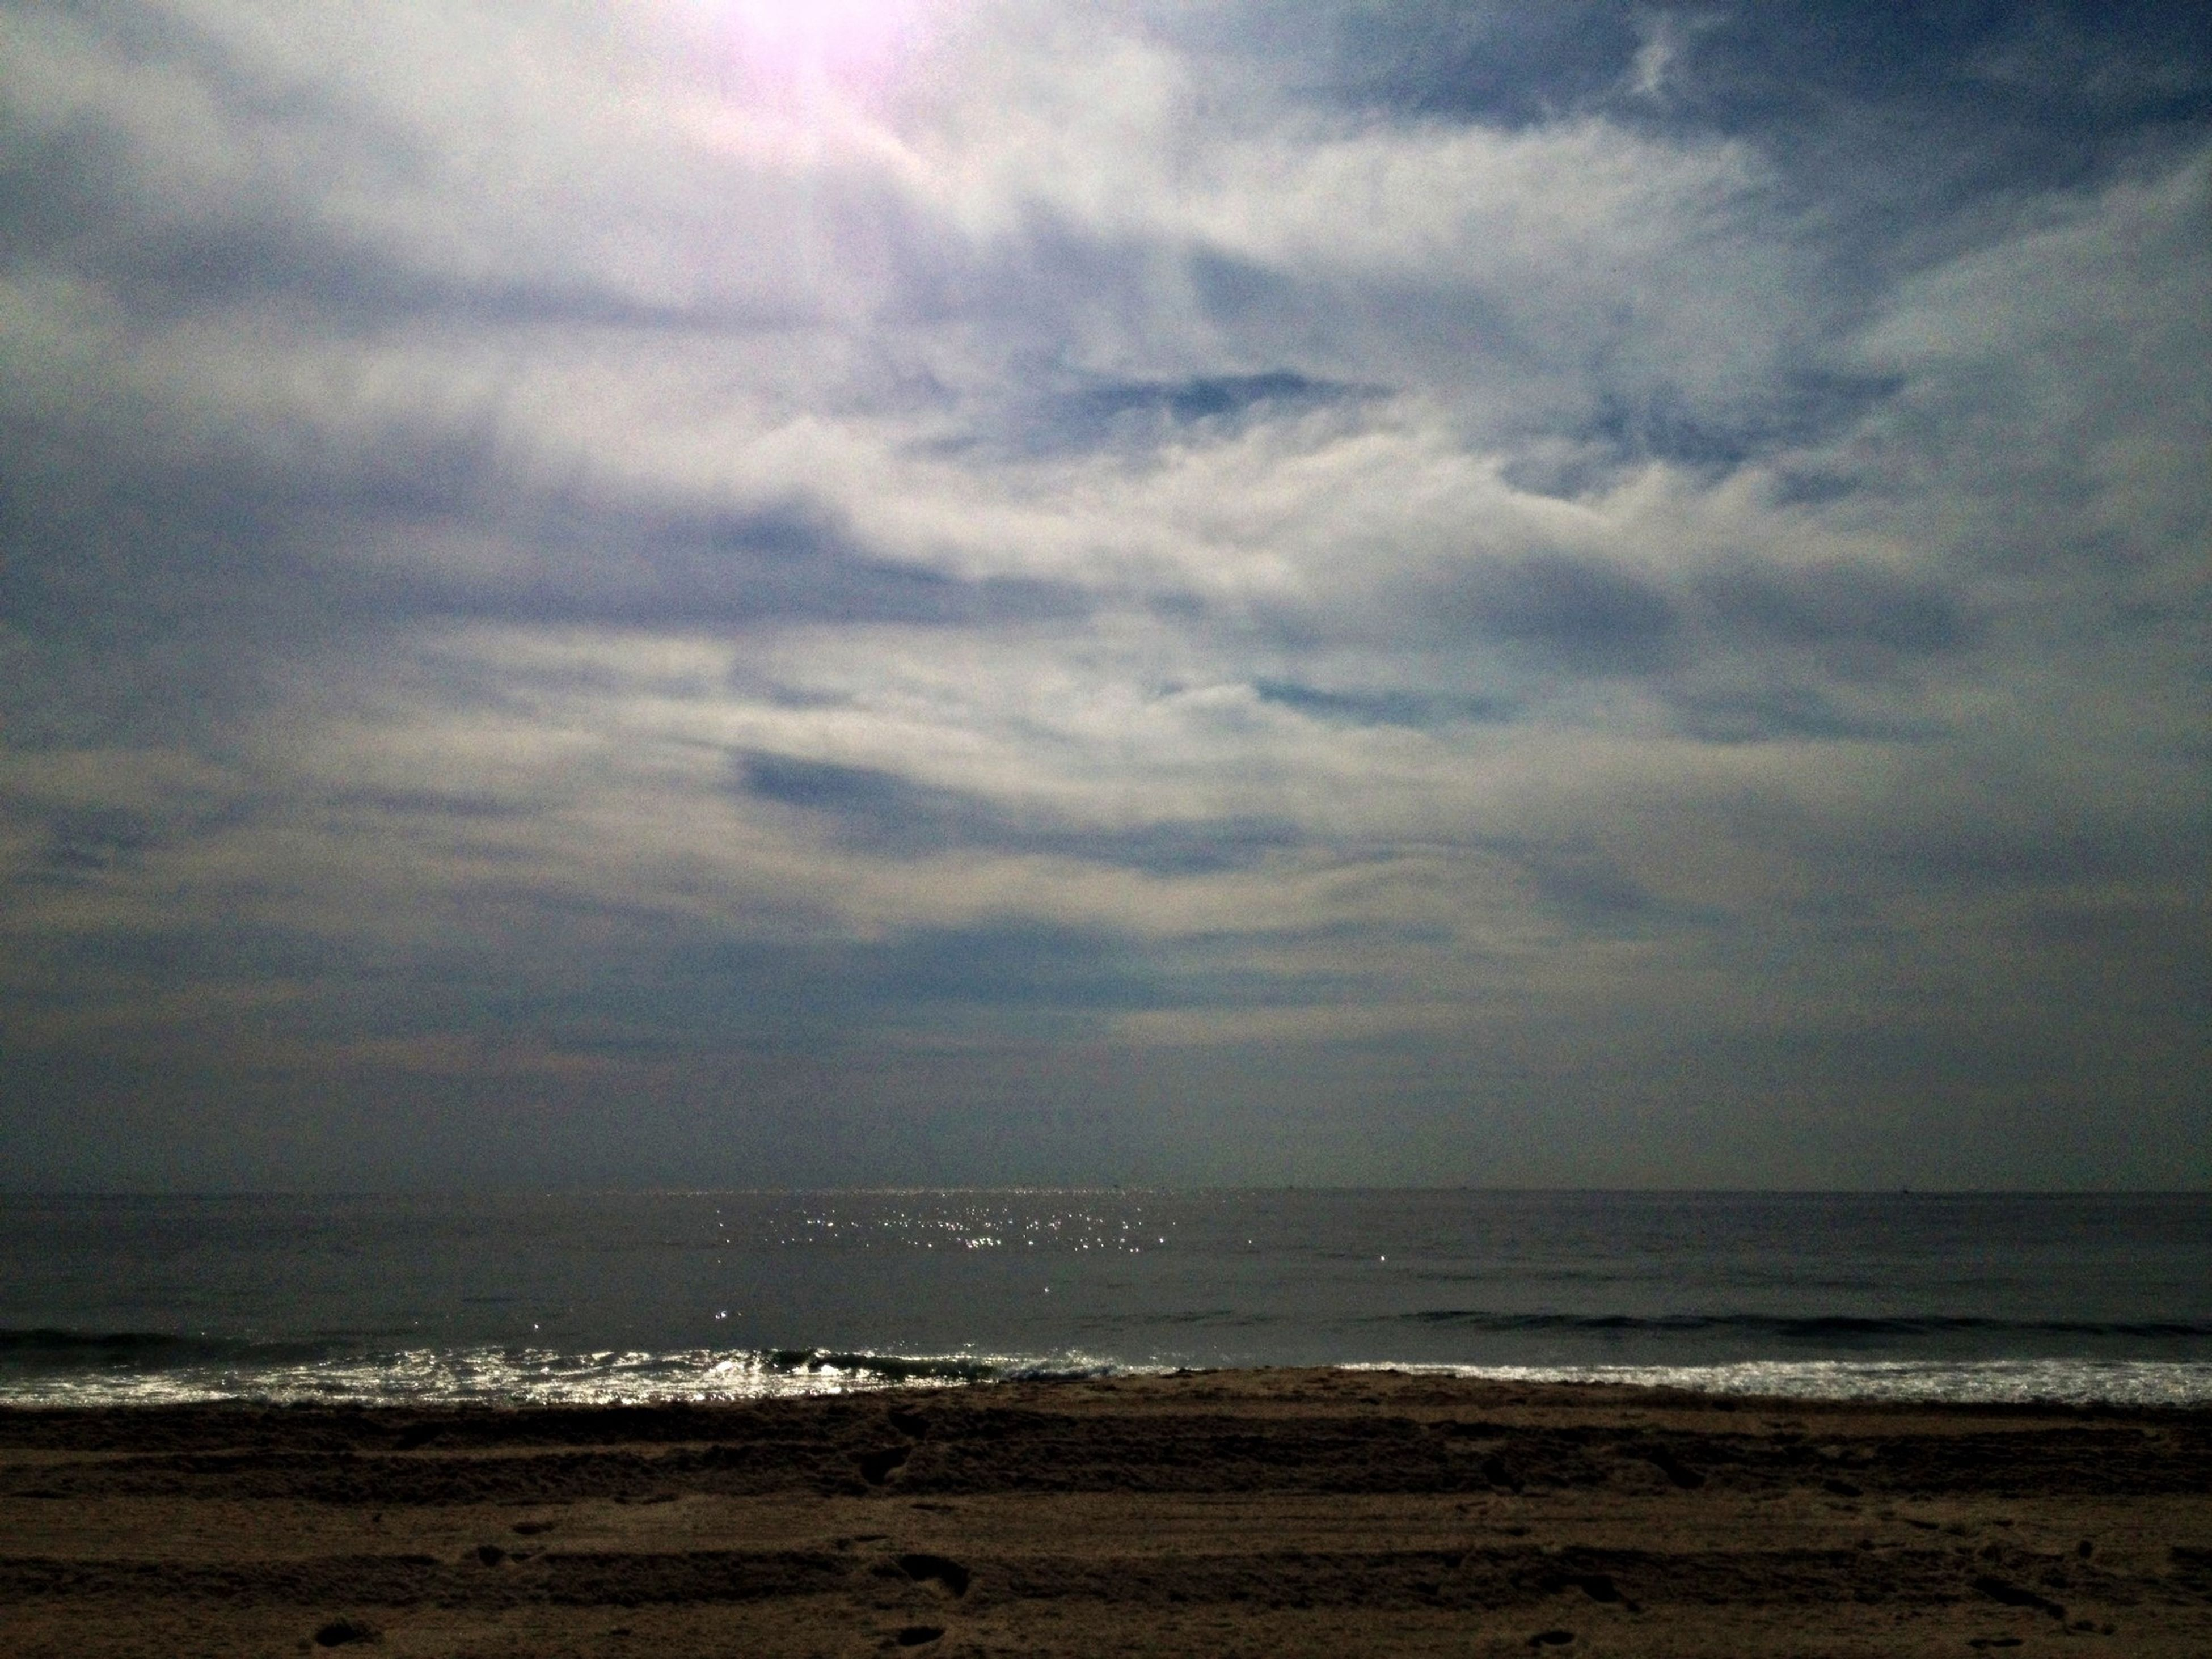 sea, horizon over water, beach, sky, water, shore, tranquil scene, scenics, tranquility, beauty in nature, cloud - sky, sand, nature, cloudy, idyllic, cloud, wave, coastline, remote, outdoors